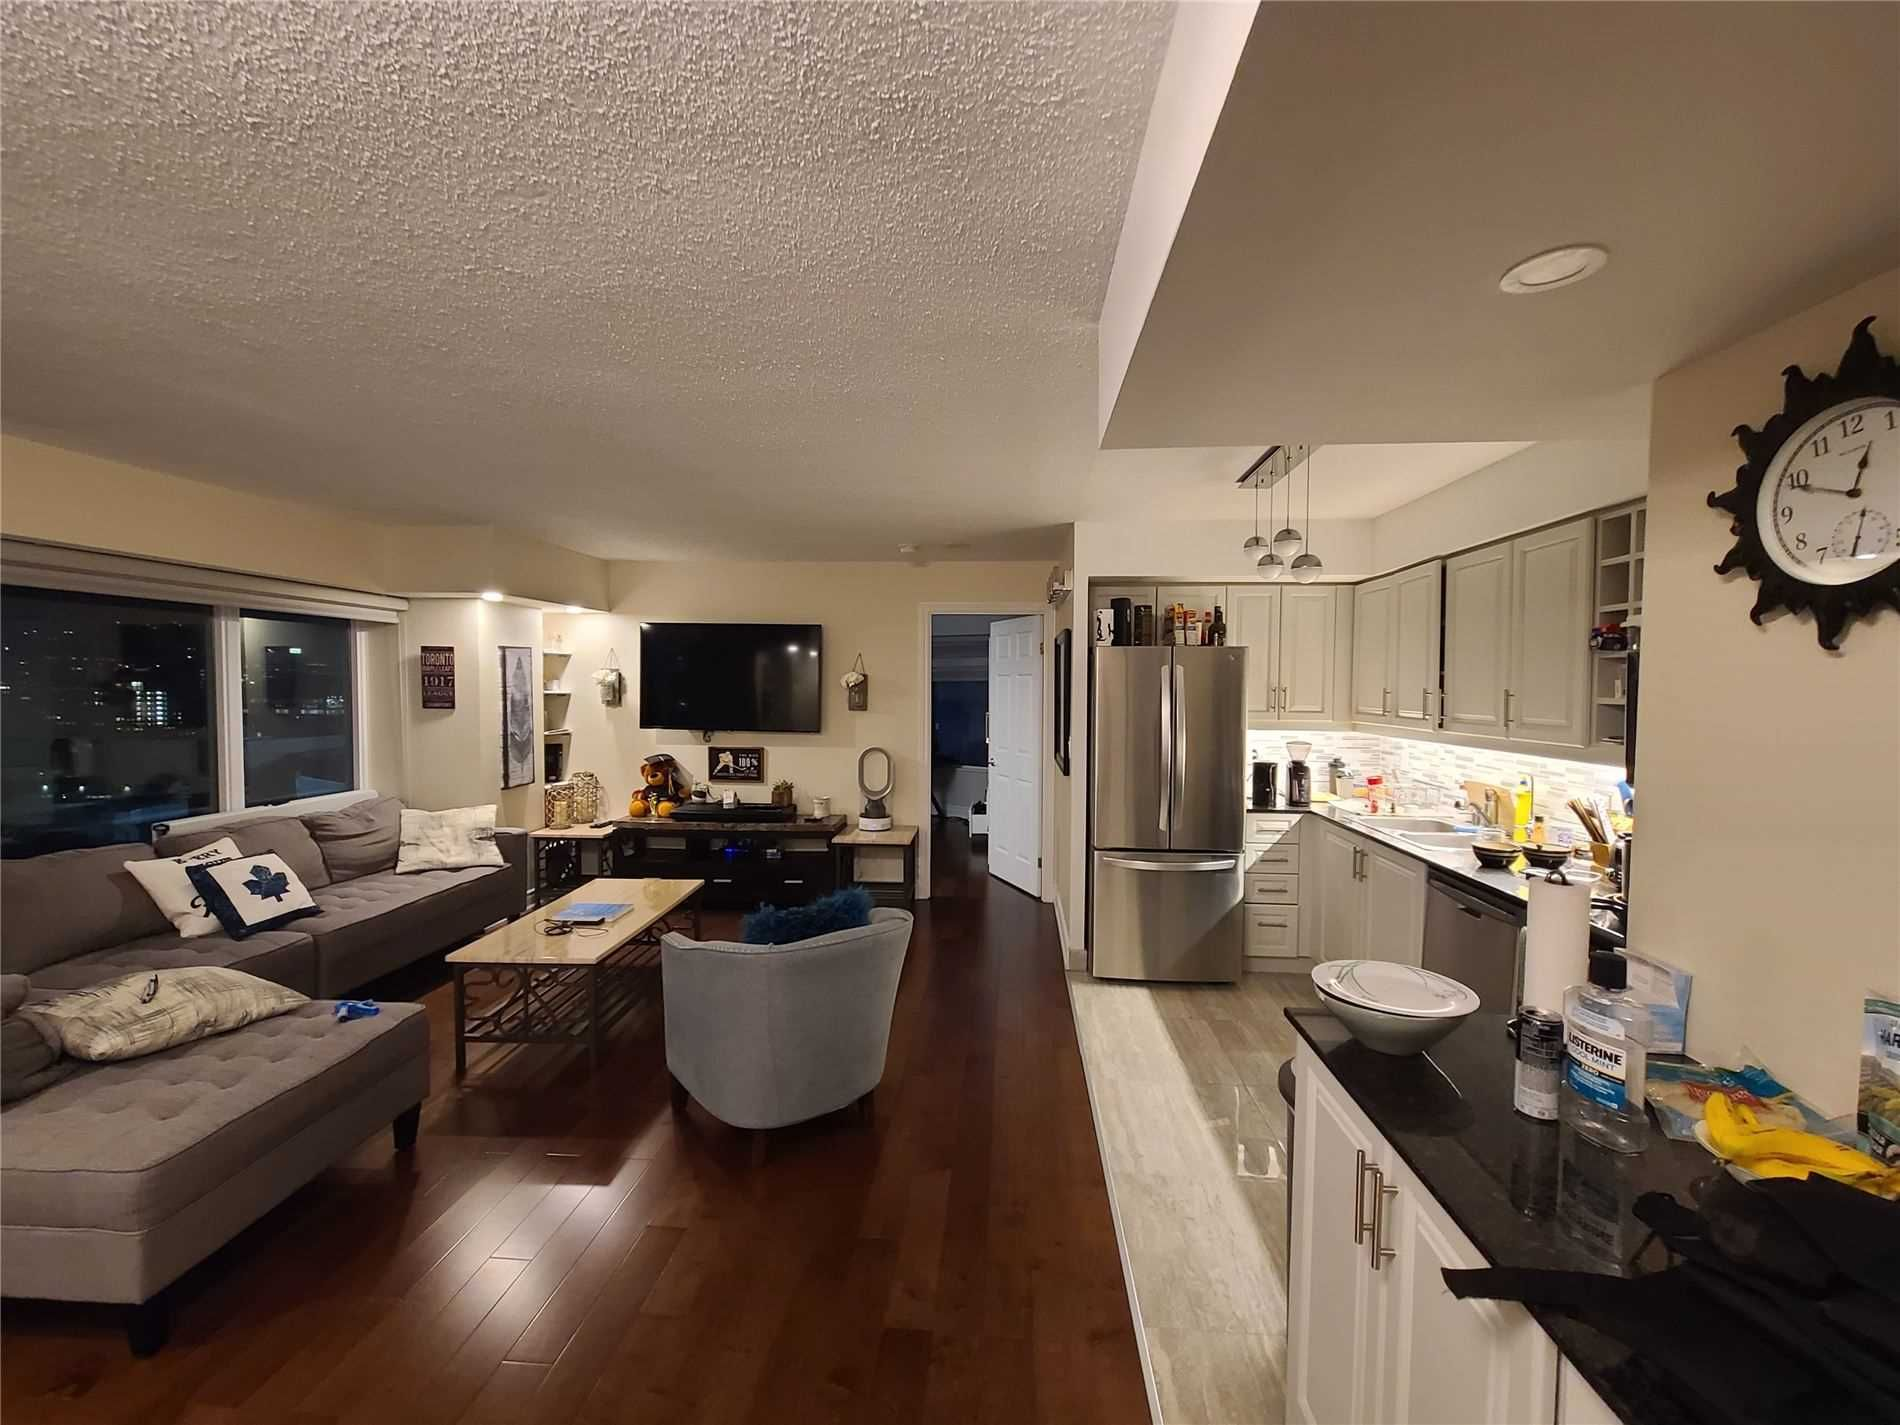 210 Victoria St, unit 2010 for rent in Toronto - image #2